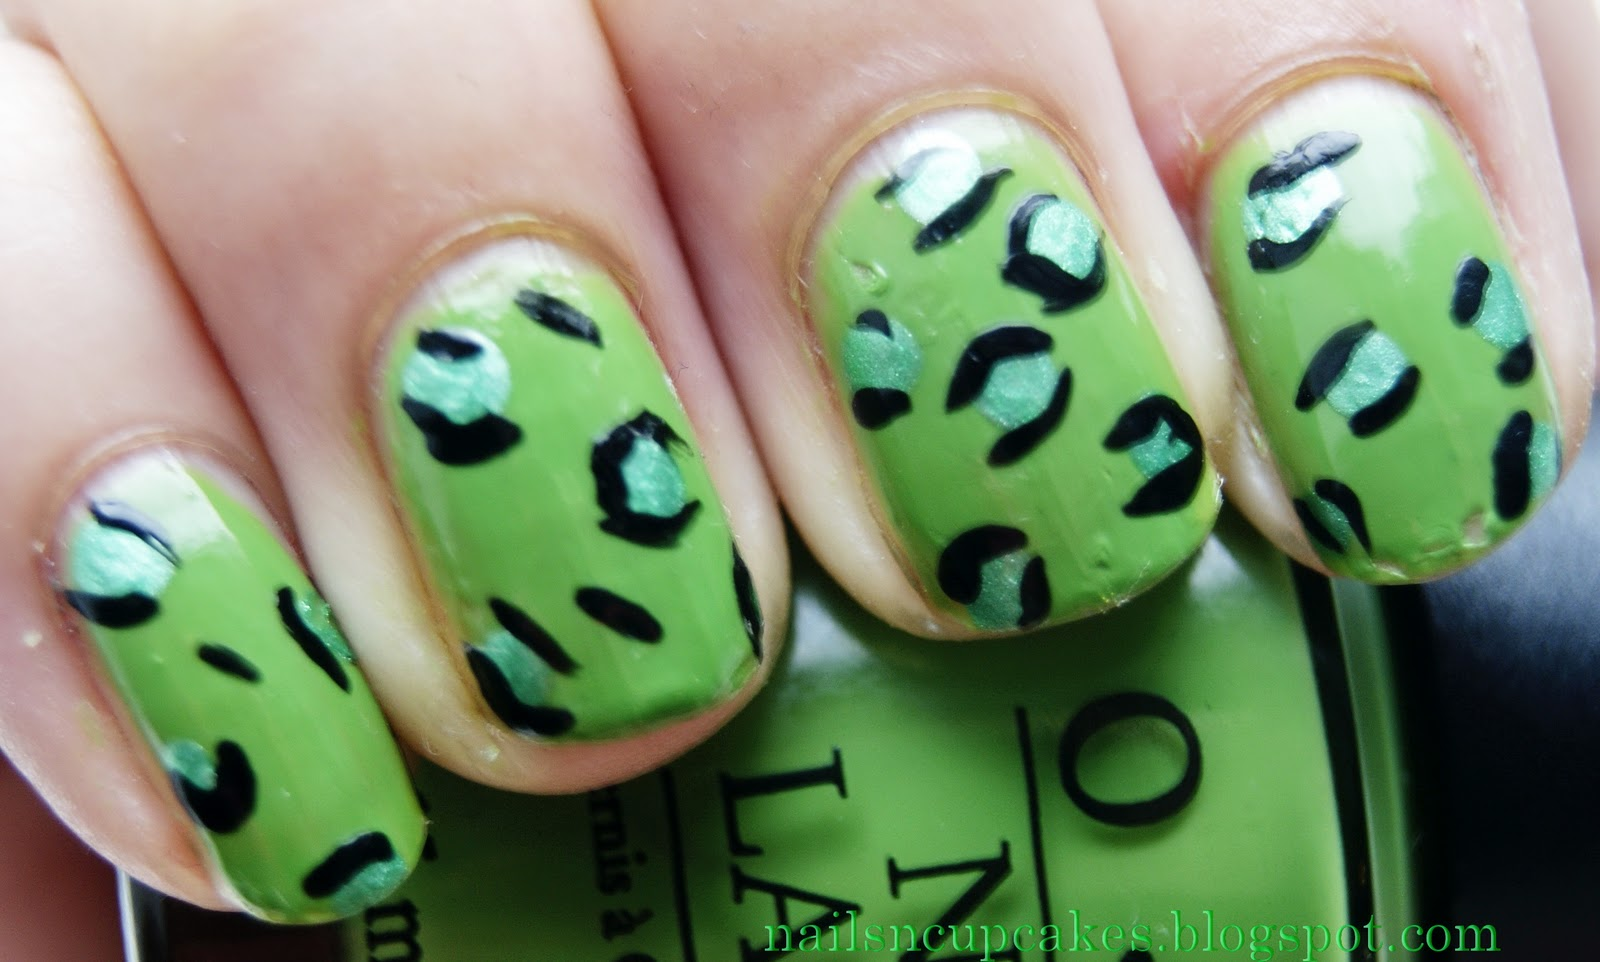 Leopard pattern is a classic, even in nail design